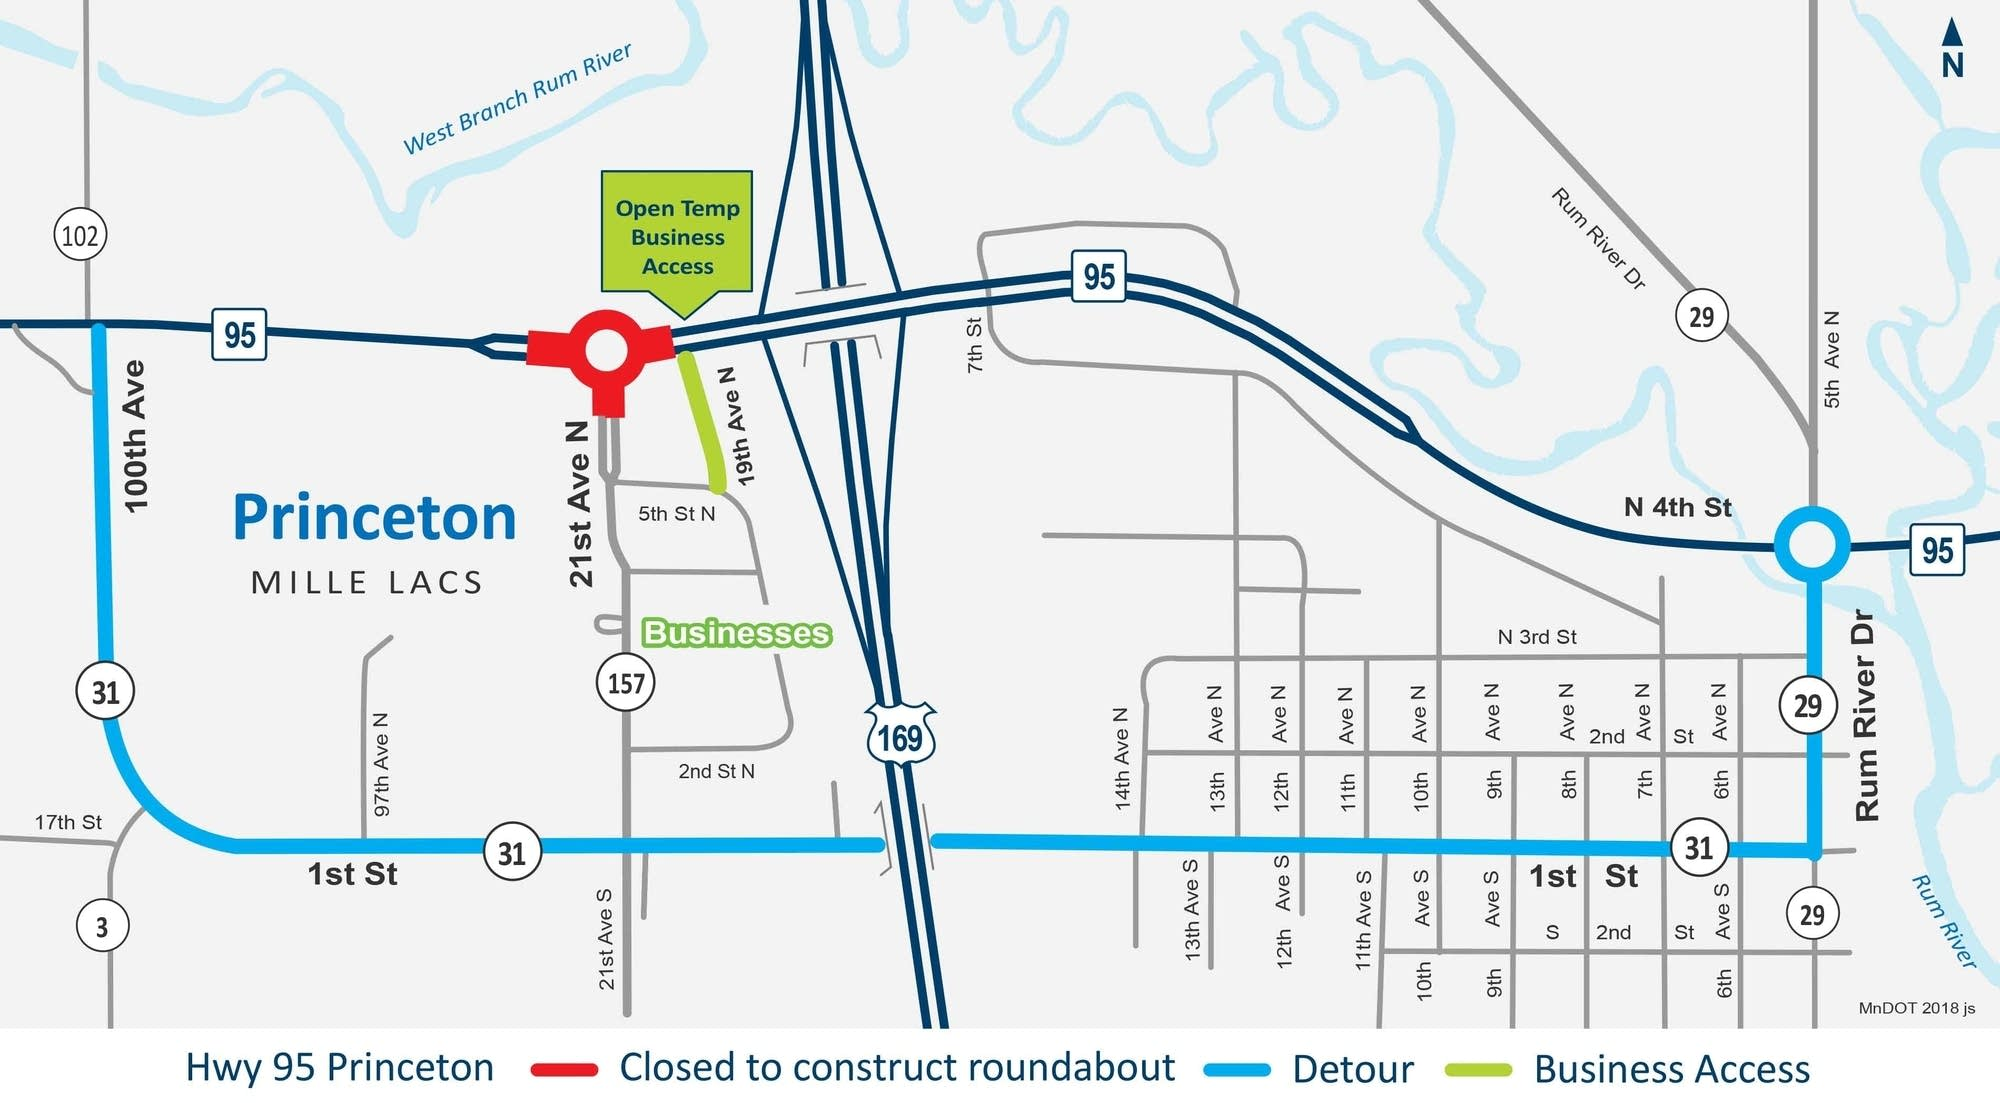 Highway 95 Princeton roundabout construction